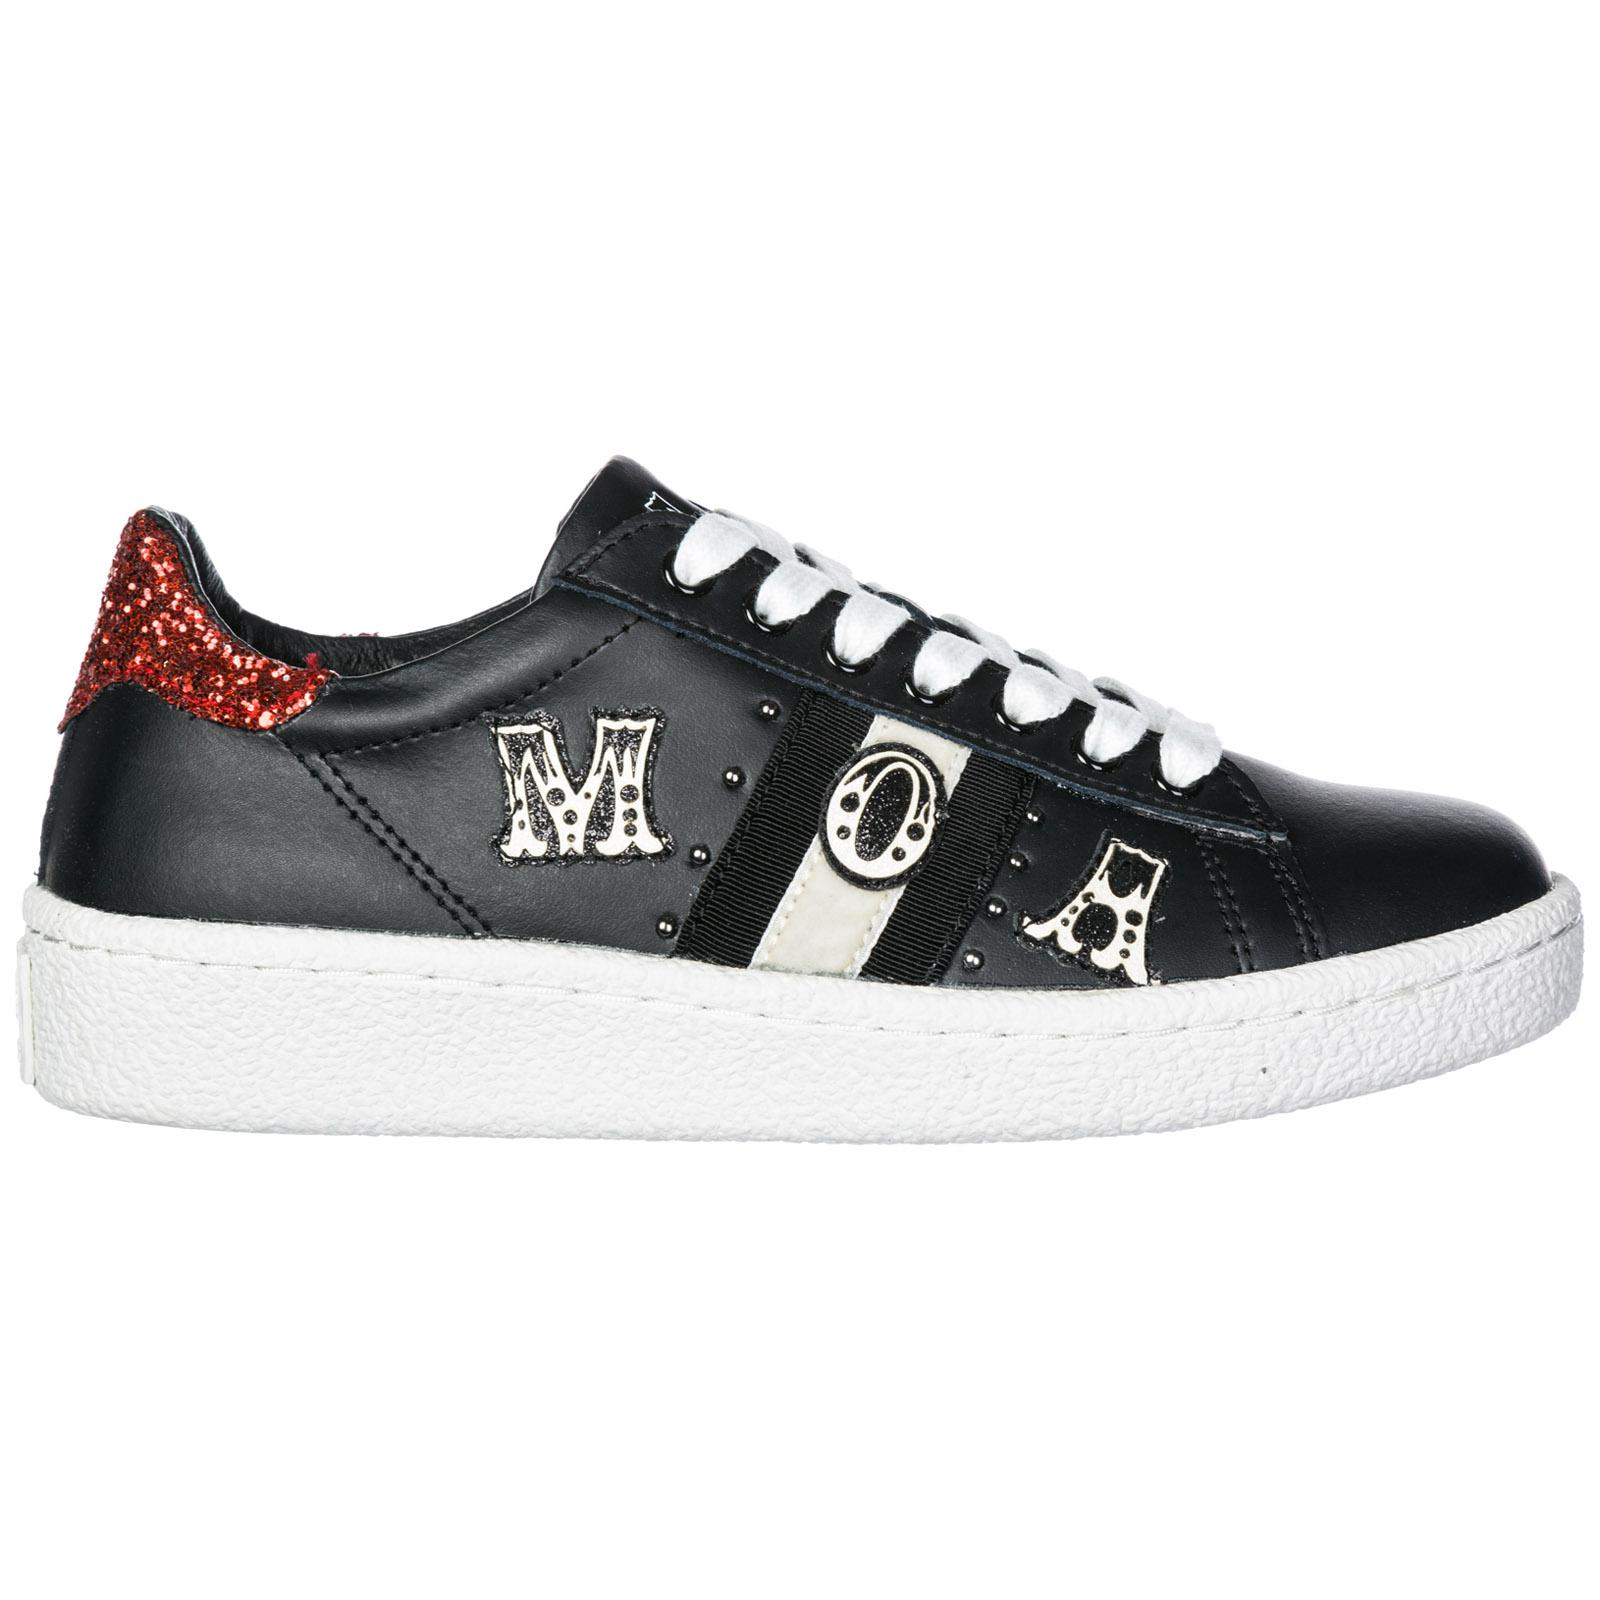 a5a8cdd896a7d Moa Scarpe Sneakers Donna In Pelle Grand Master in Black - Lyst